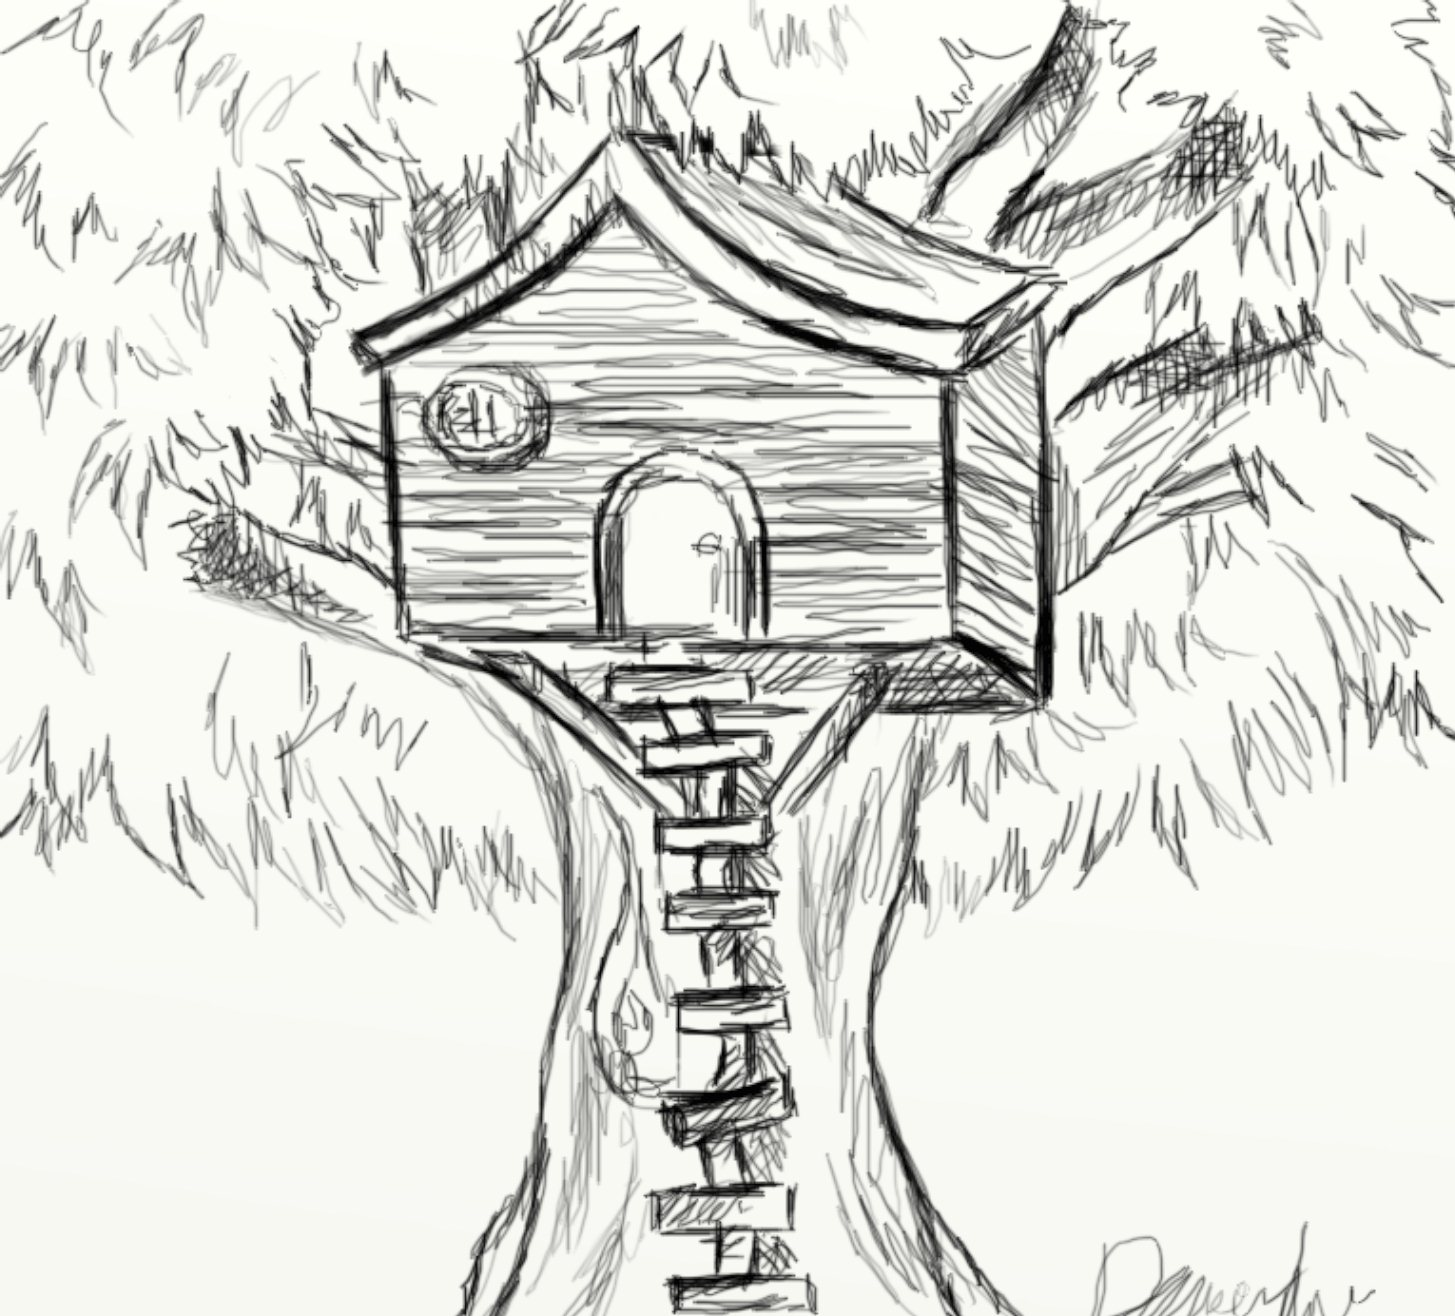 Day 196 Tree House Sketch